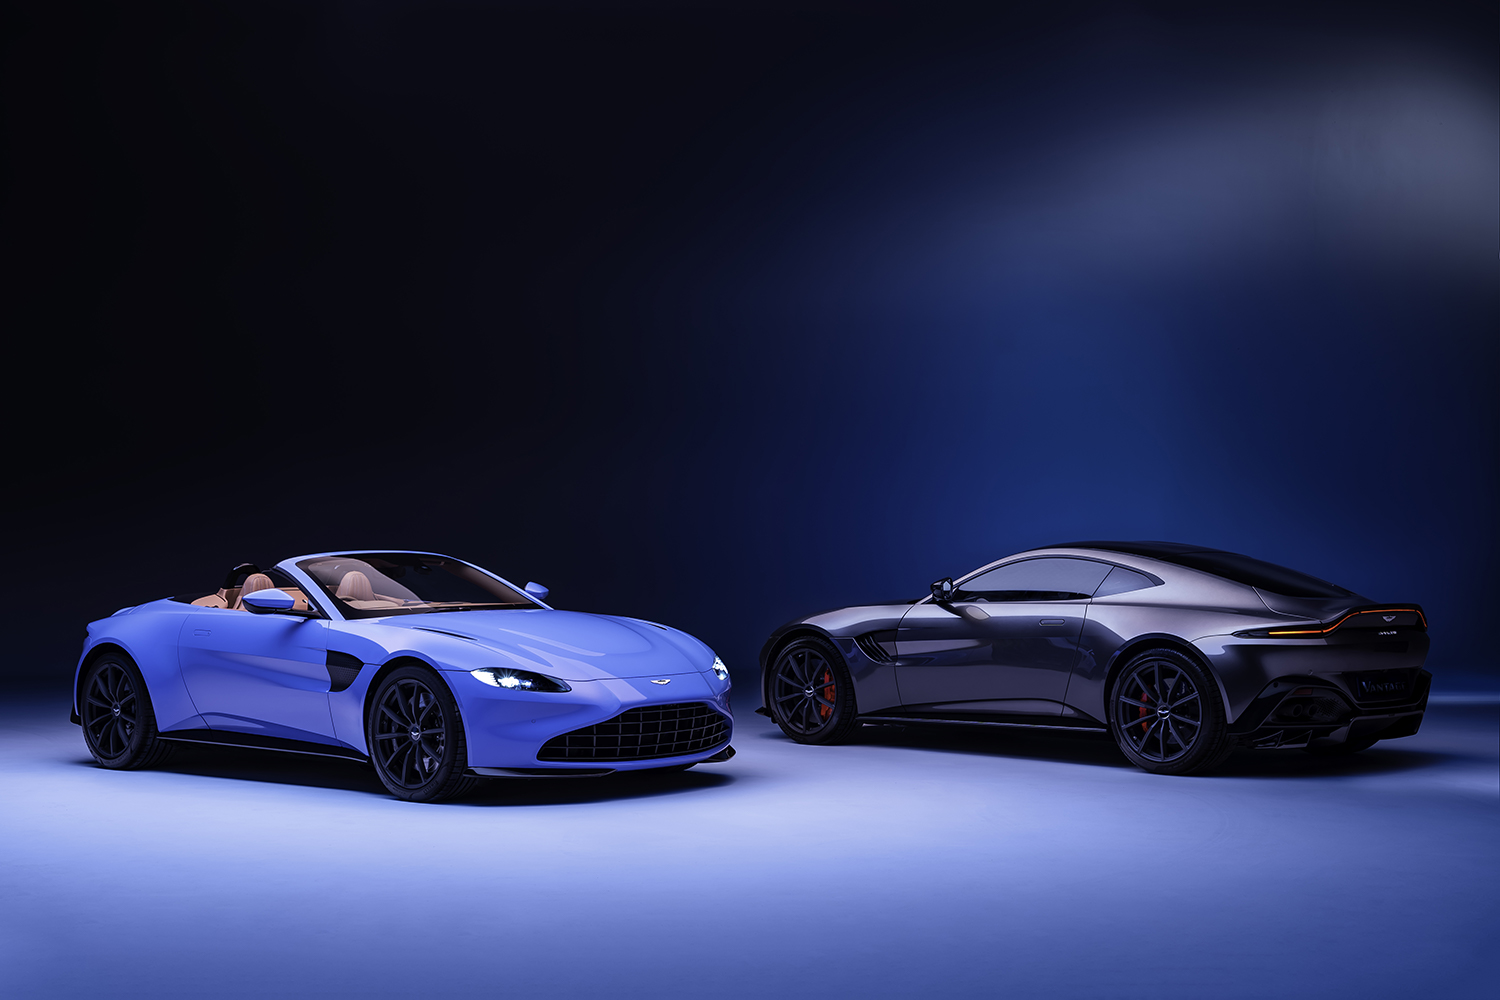 Aston Martin Vantage Roadster and Coupe